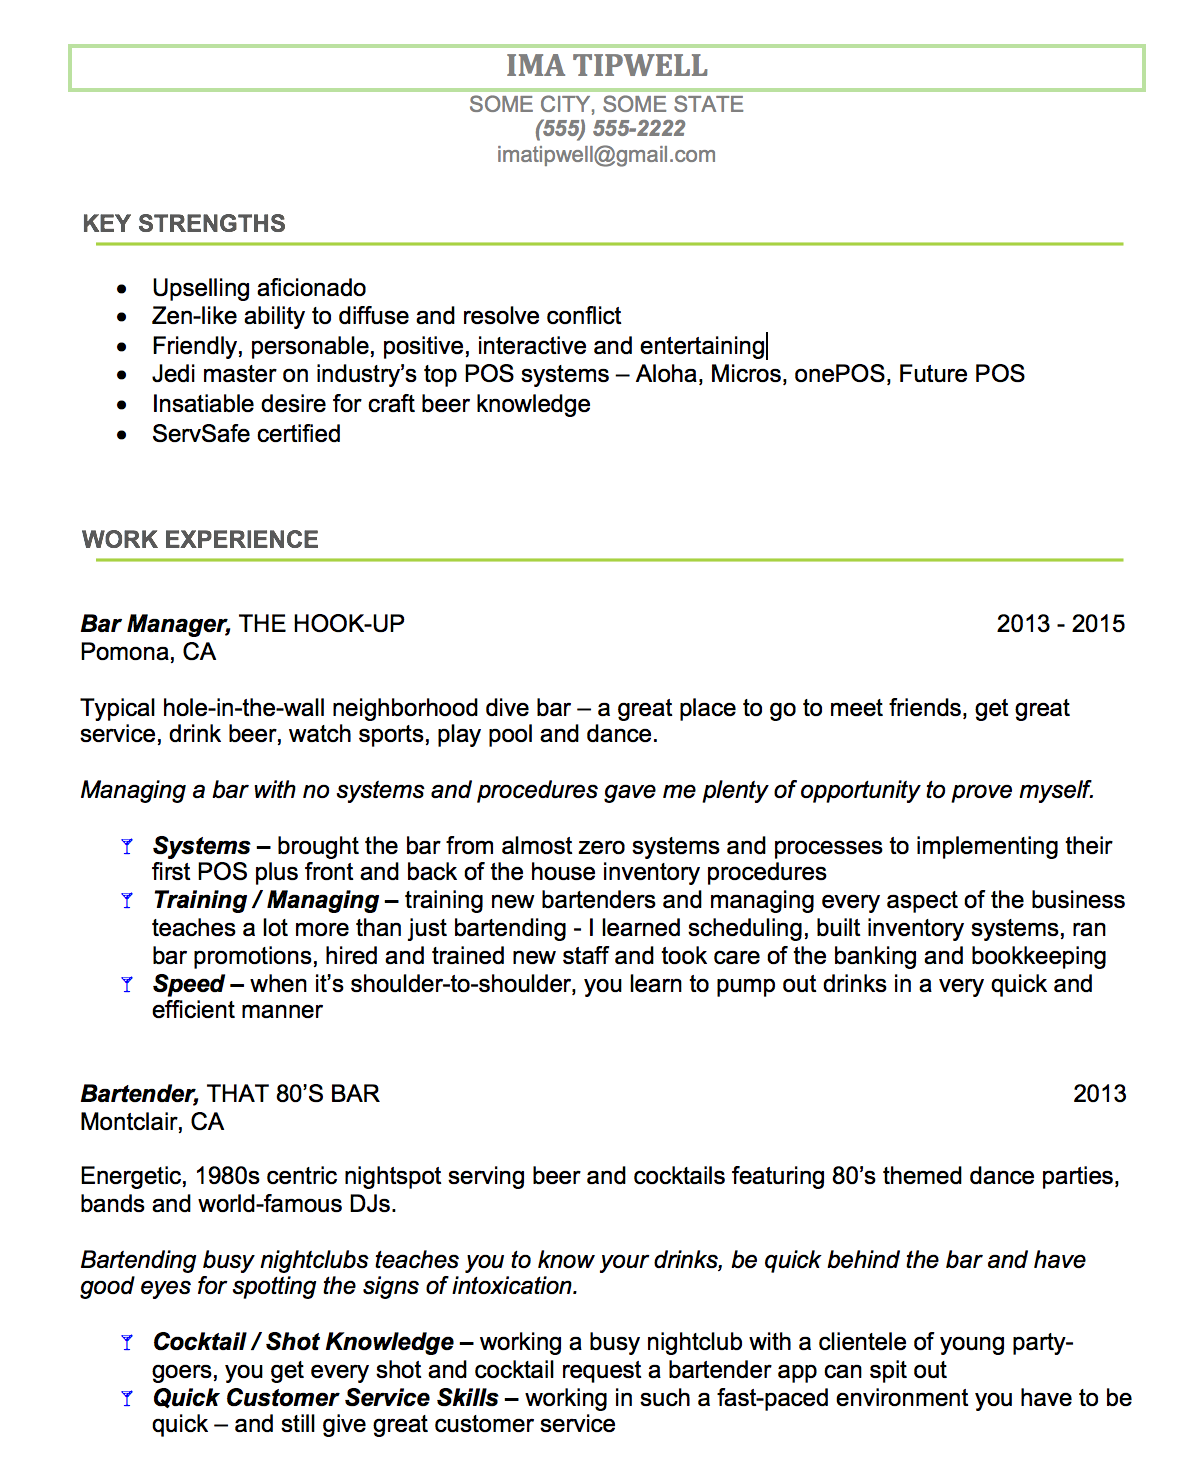 Bartending Resume Example #2 U2013 With Industry Experience